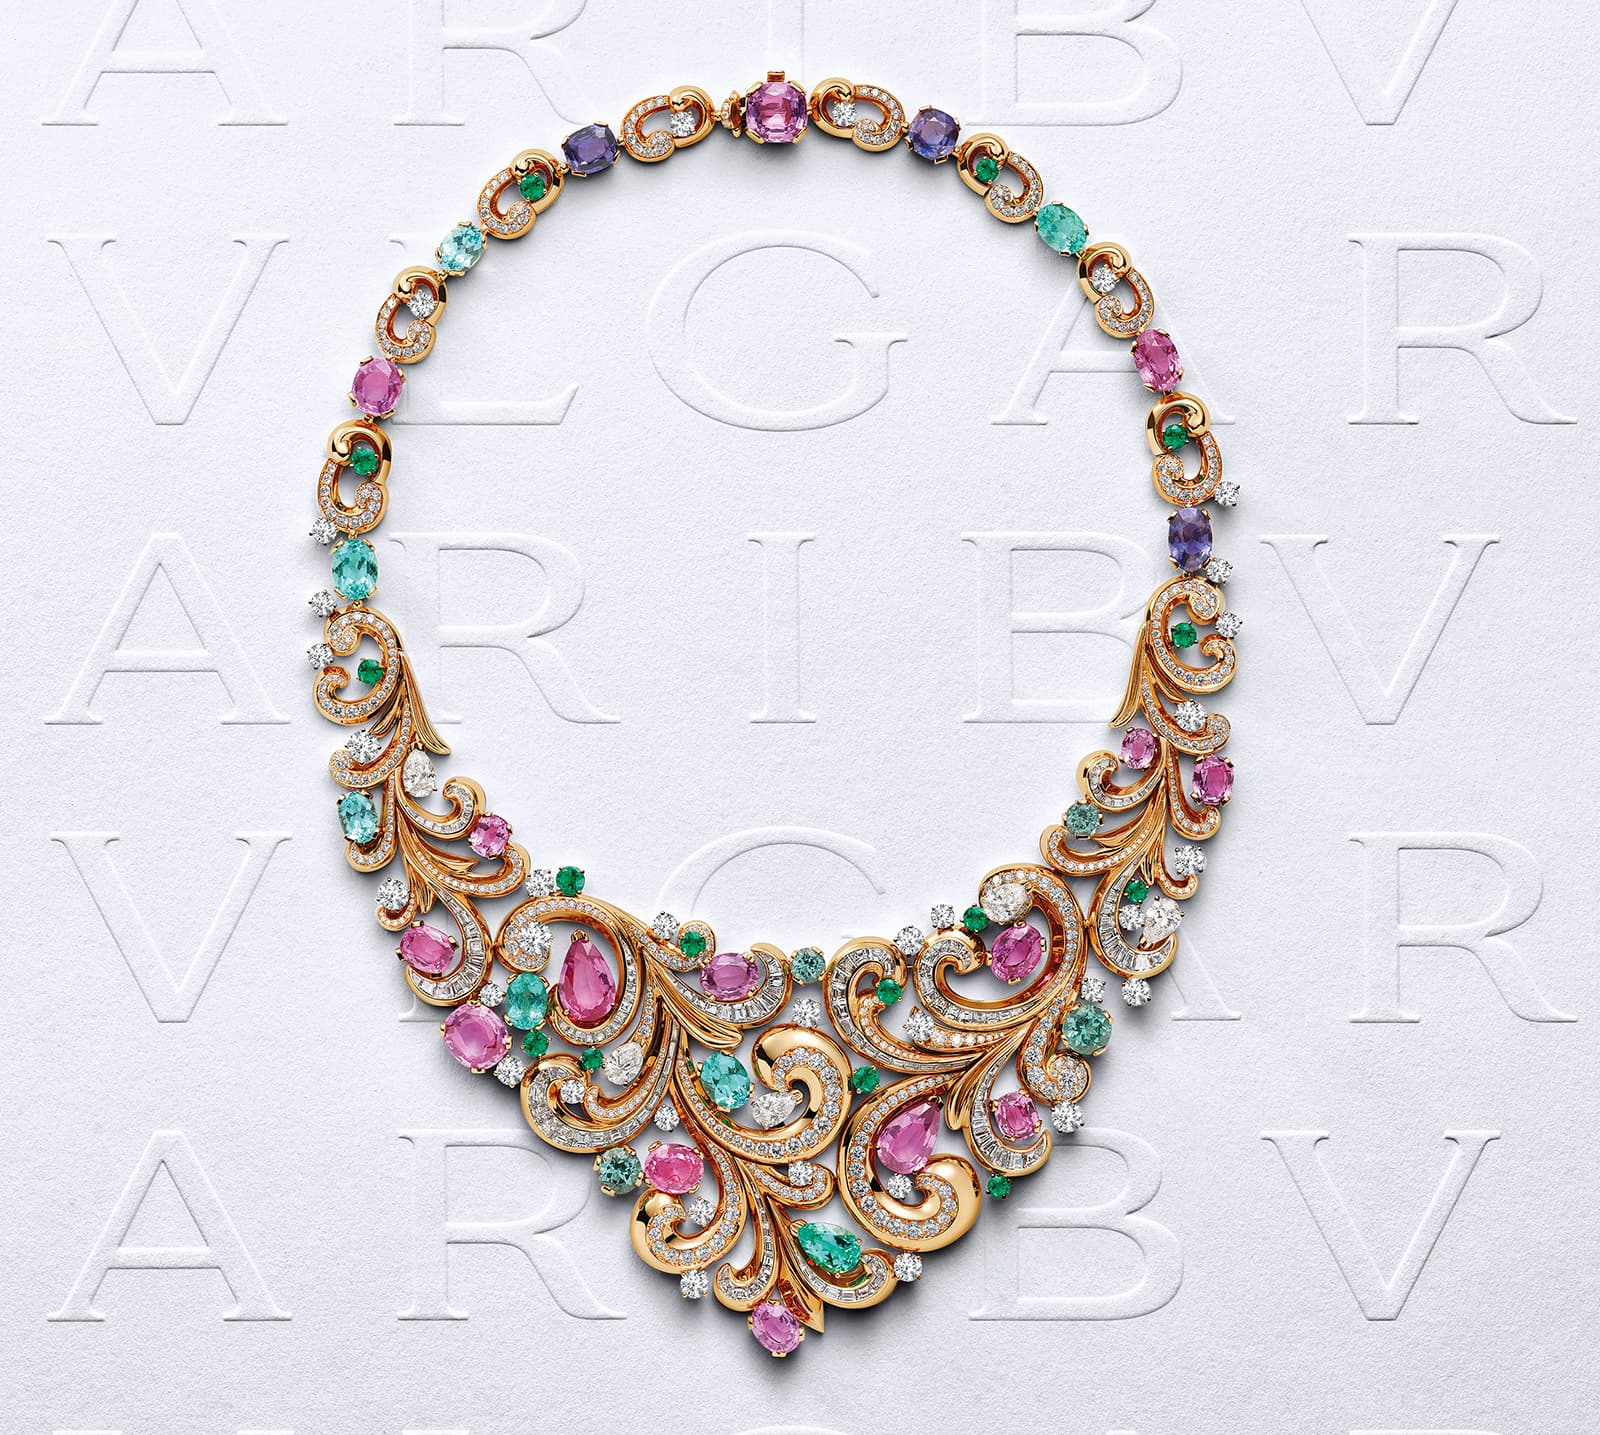 Bvlgari Borocko Lady Arabesque high jewellery necklace, set with sapphires, Paraiba tourmalines, emeralds and diamonds in 18 carat rose gold